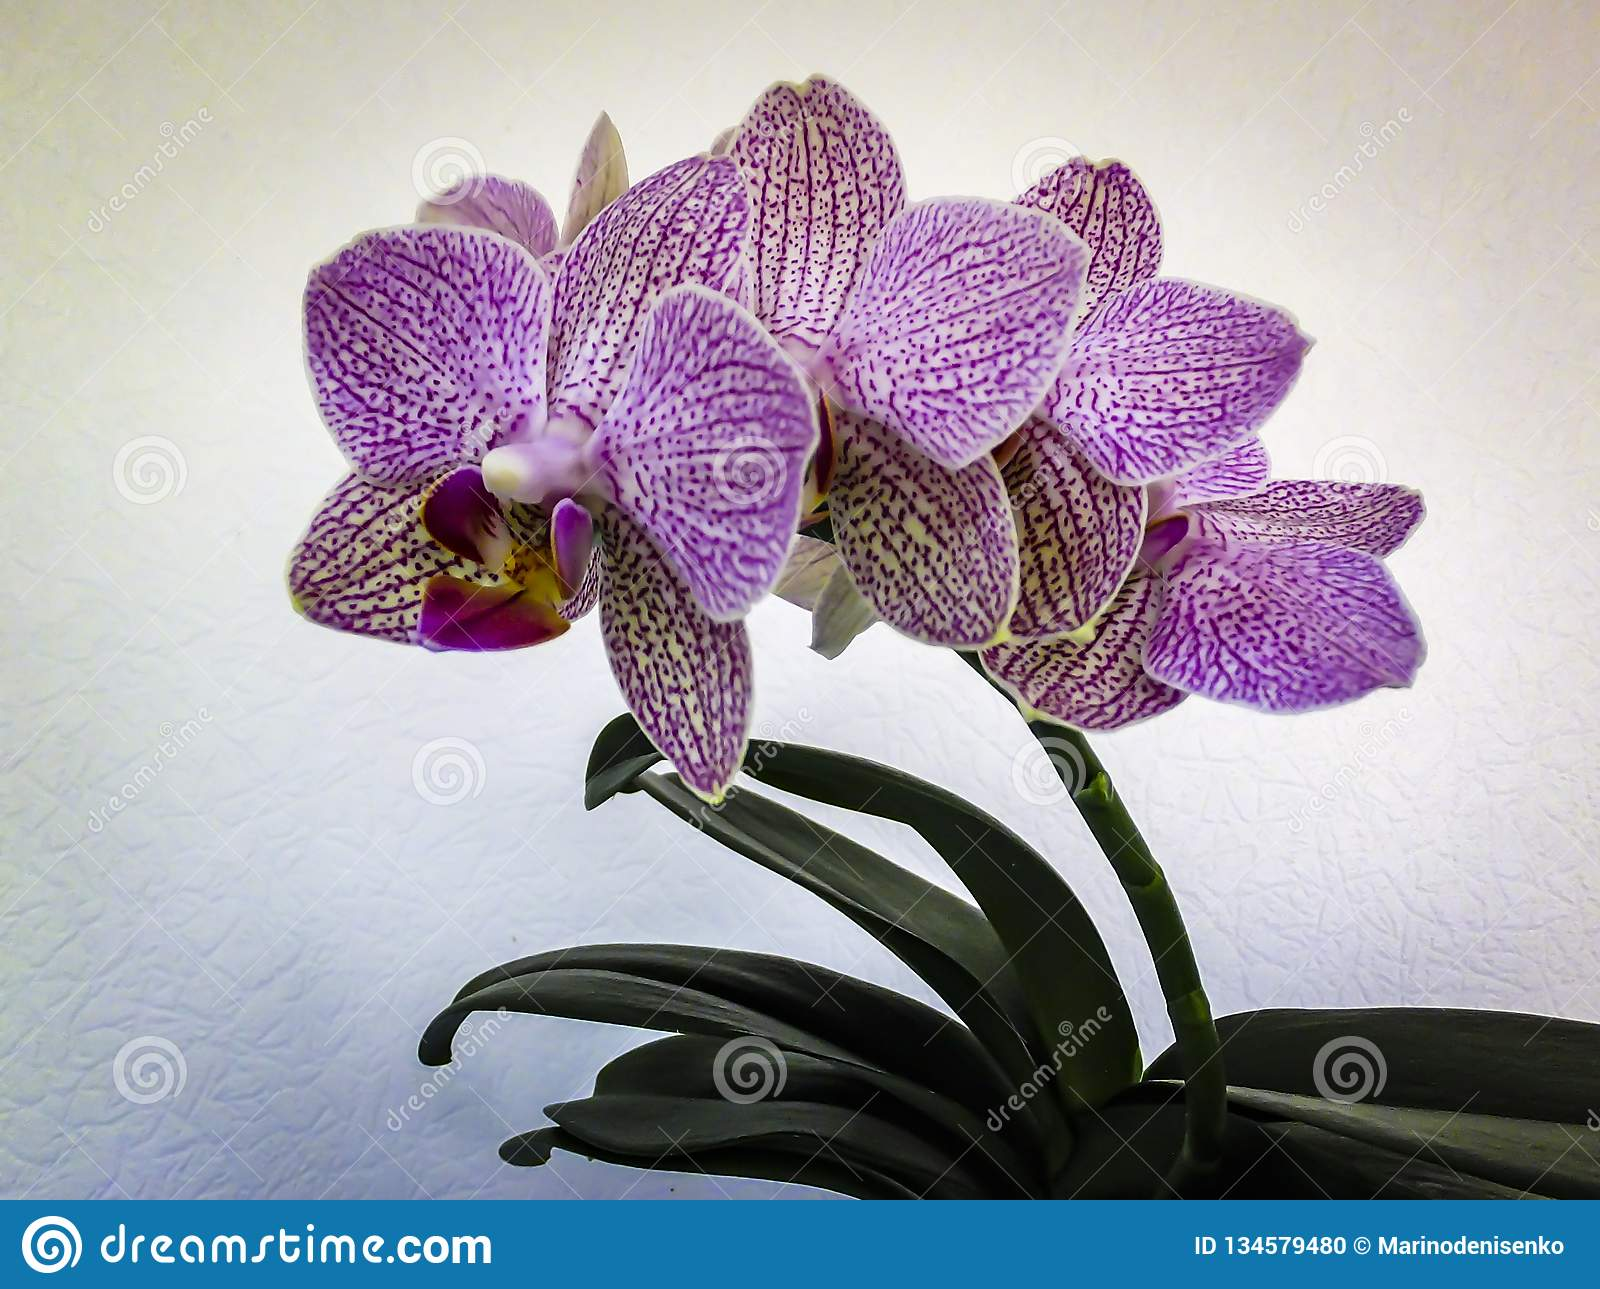 Very Beautiful Orchid Flower Phalaenopsis Known As The Moth